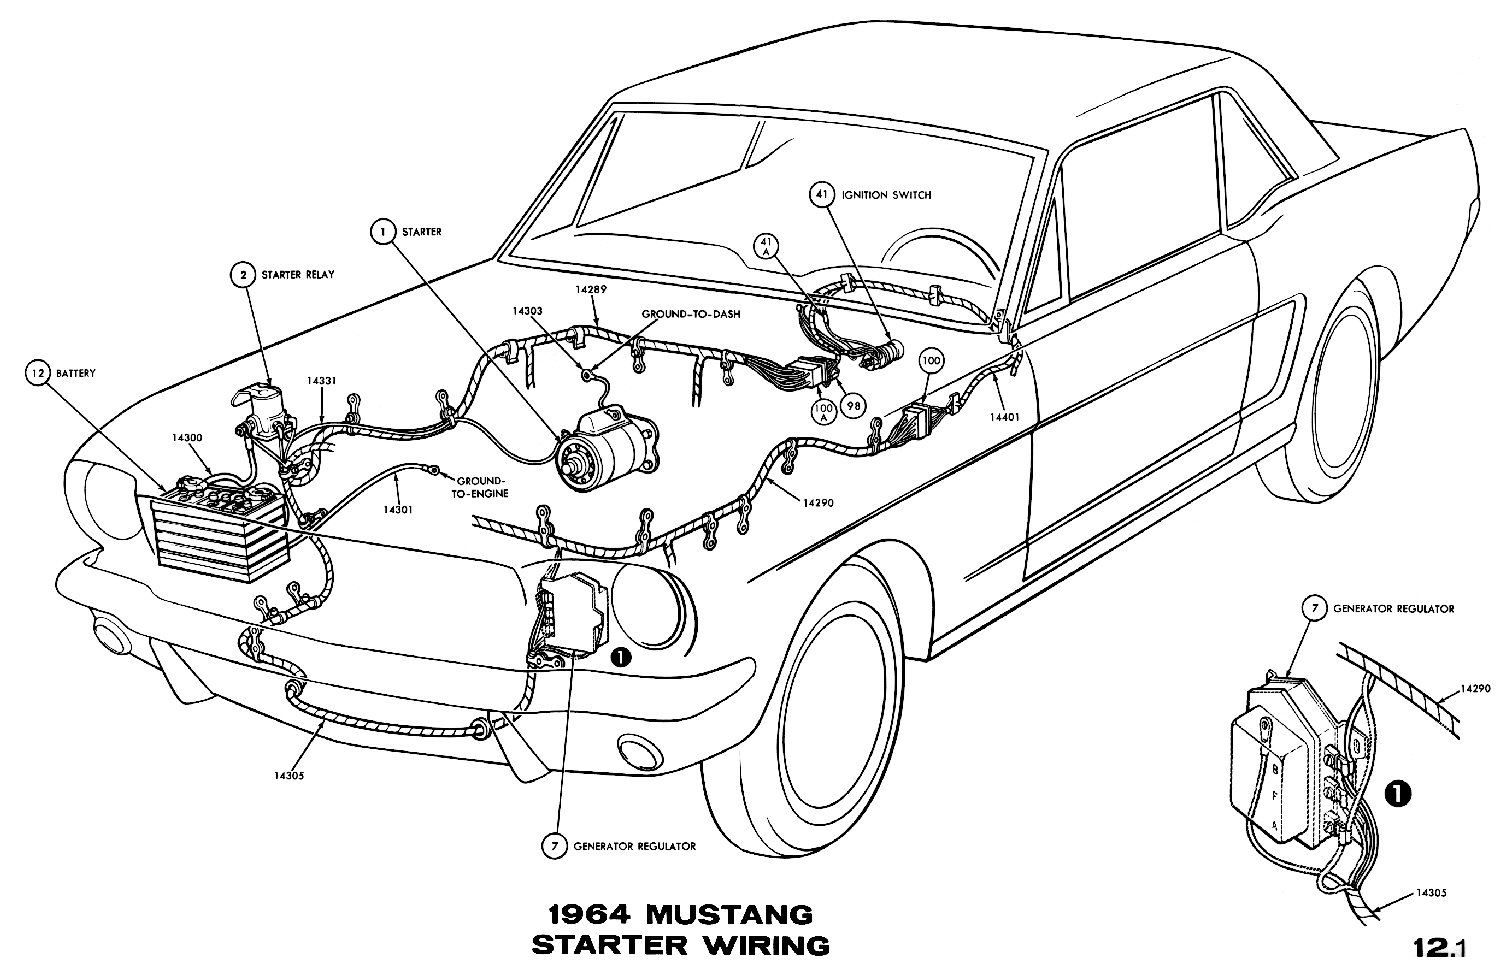 1964 Mustang Wiring Diagrams Average Joe Restoration Alternator Starter Diagram Sm1964d Pictorial Or Schematic